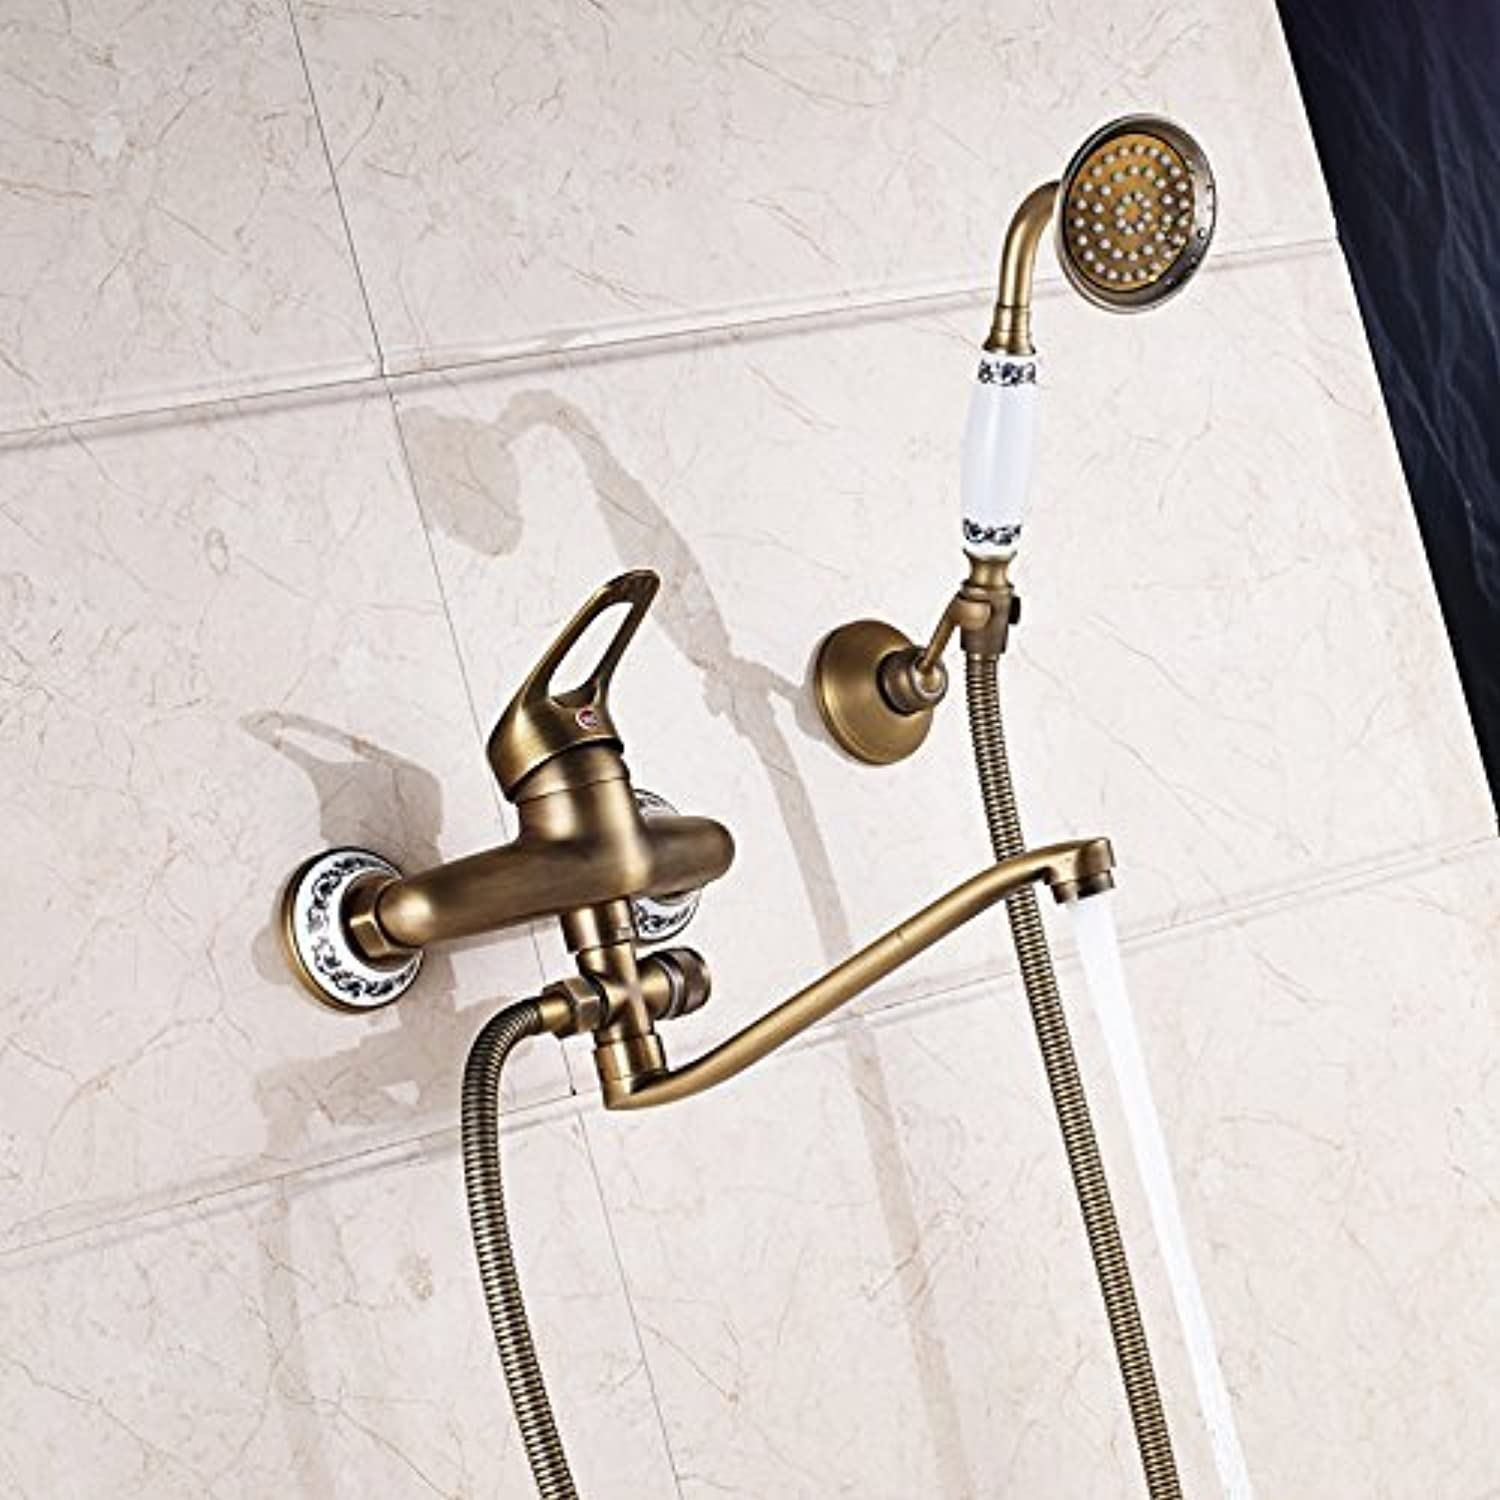 Brass Antique 25 cm Glass Shower Faucet Outlet Pipe to The Wall Assembled at Longnose Glass with Hand Shower